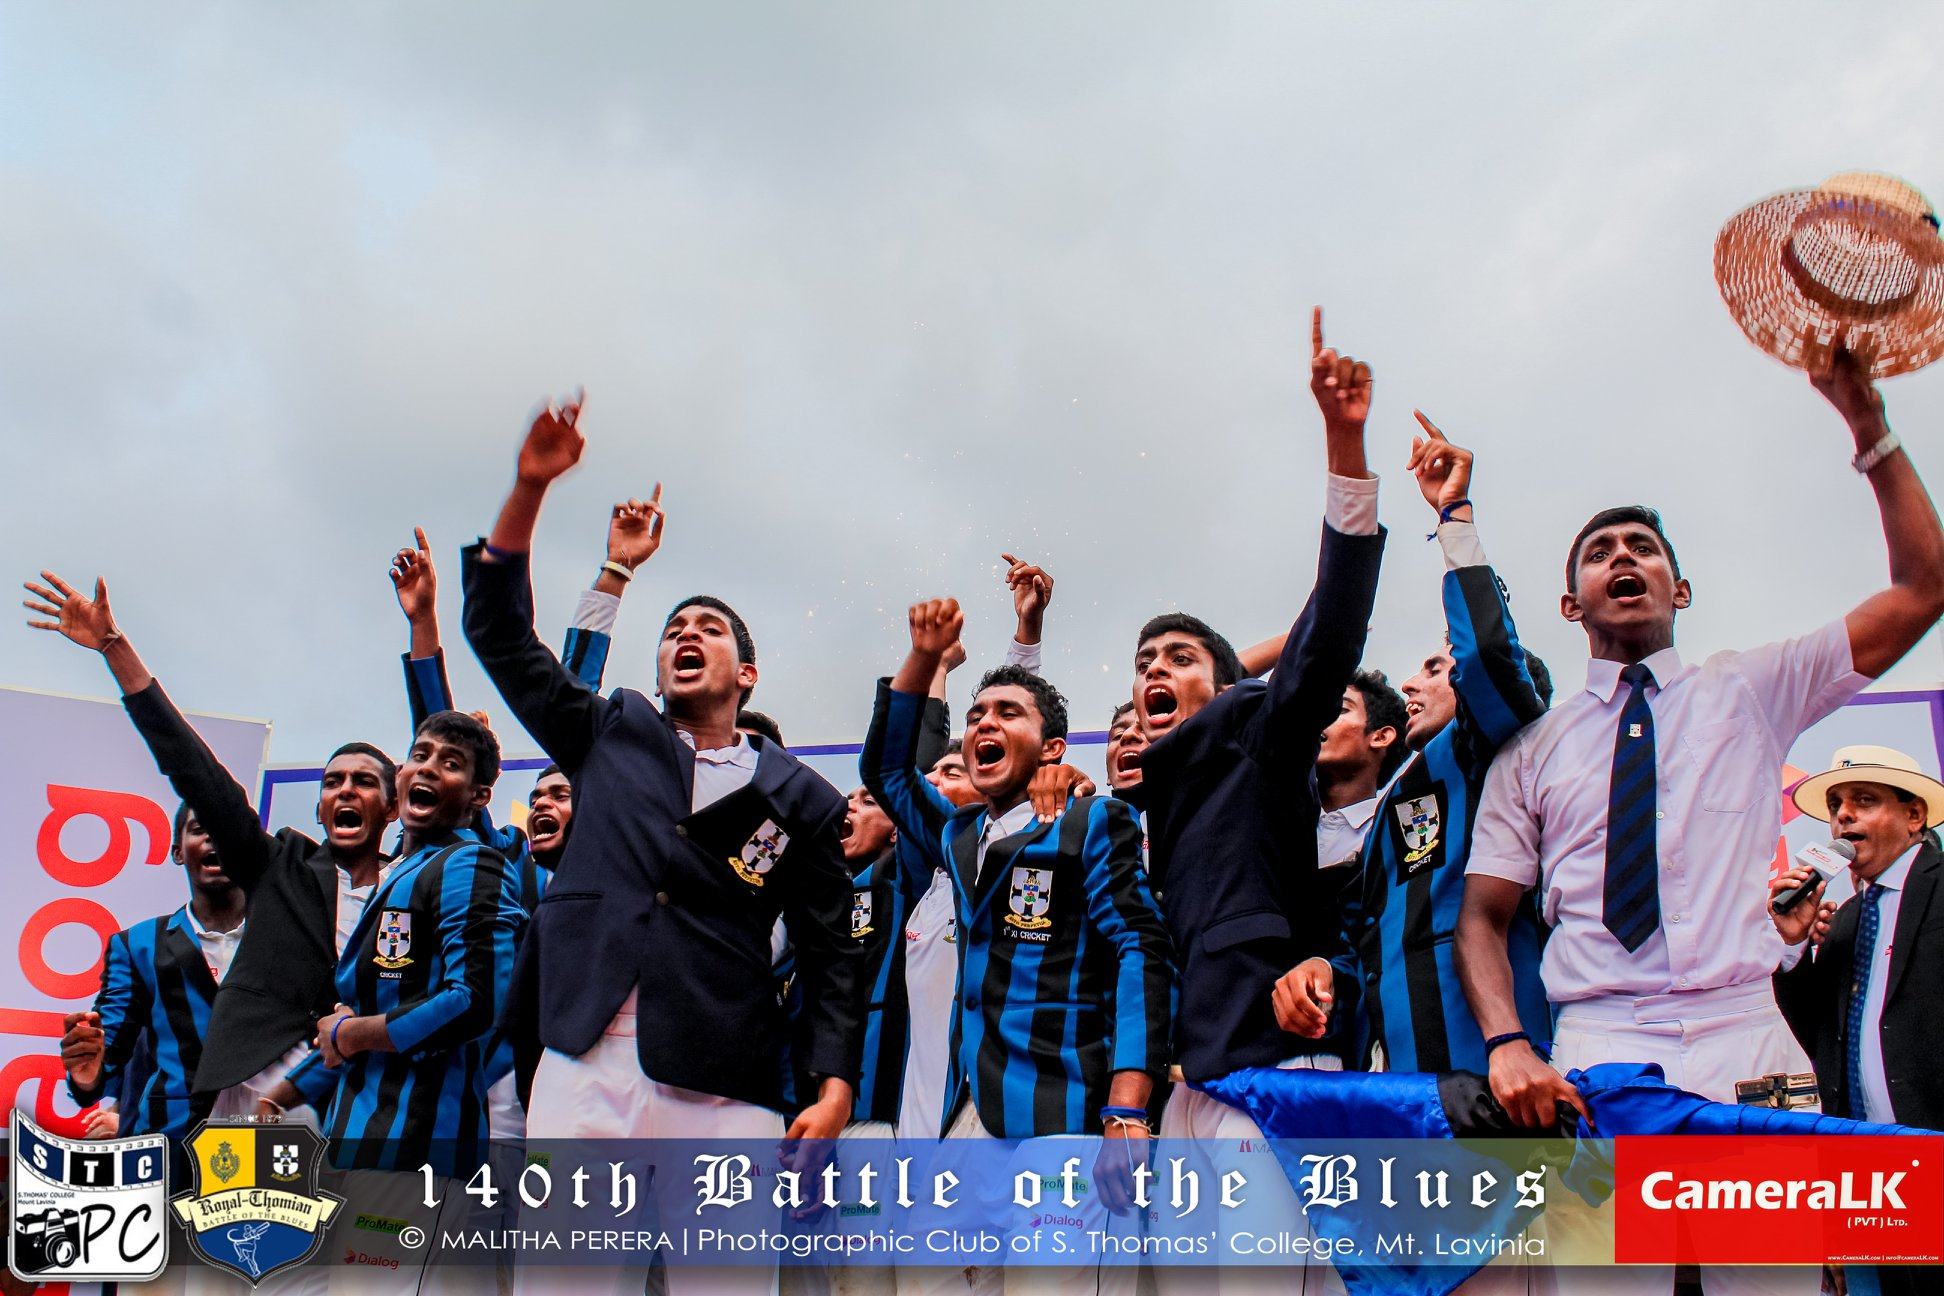 Image (& main image) : Battle of the Blues - S.Thomas' Photographic Club